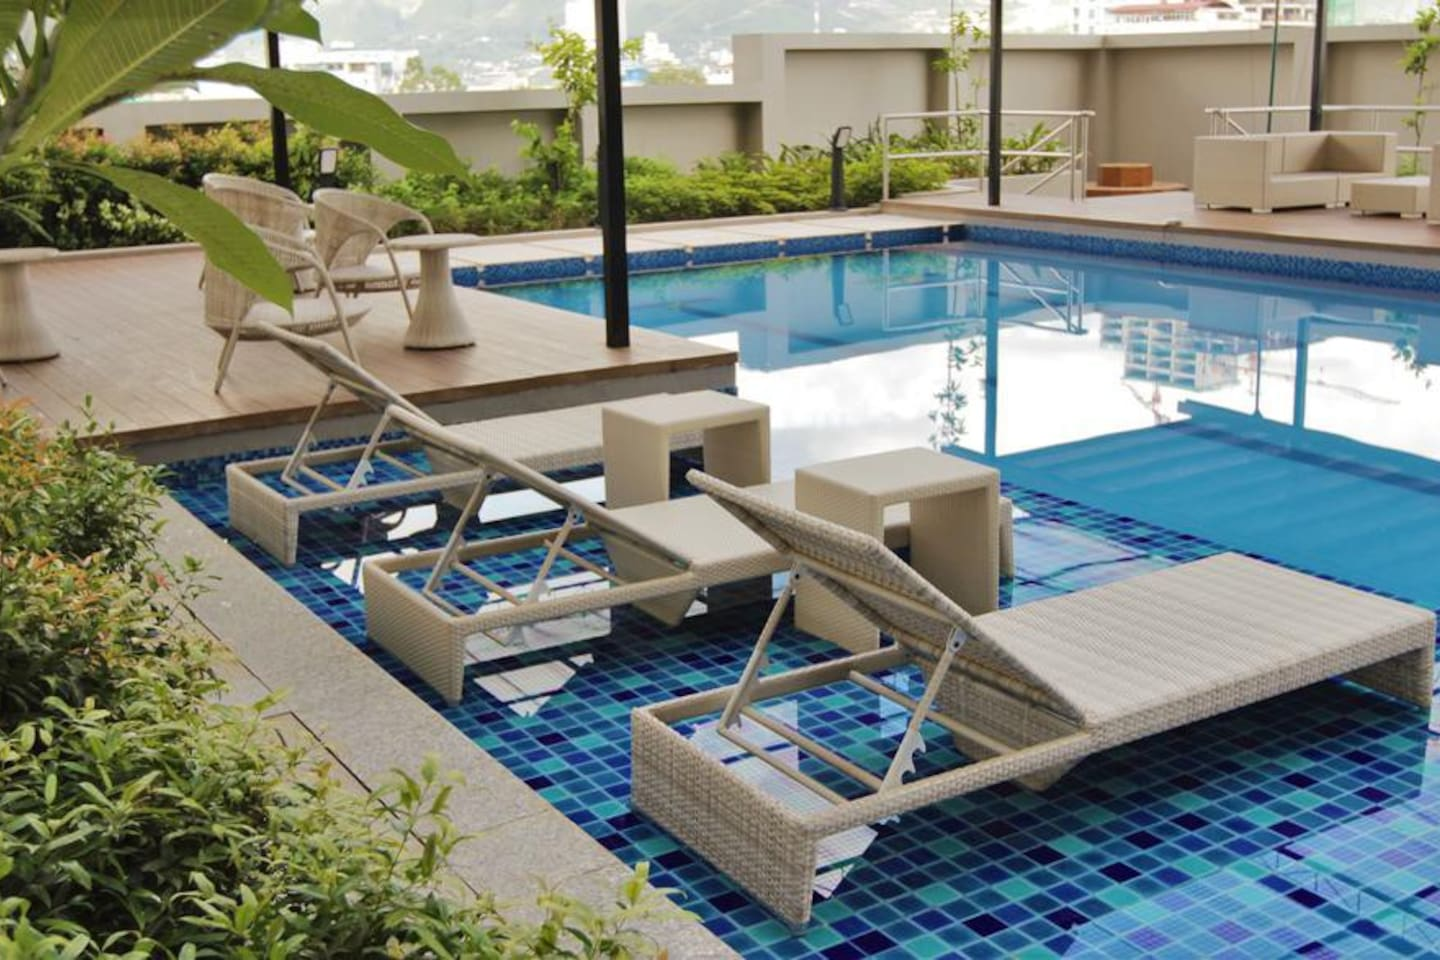 Swimming pool at the 9th floor